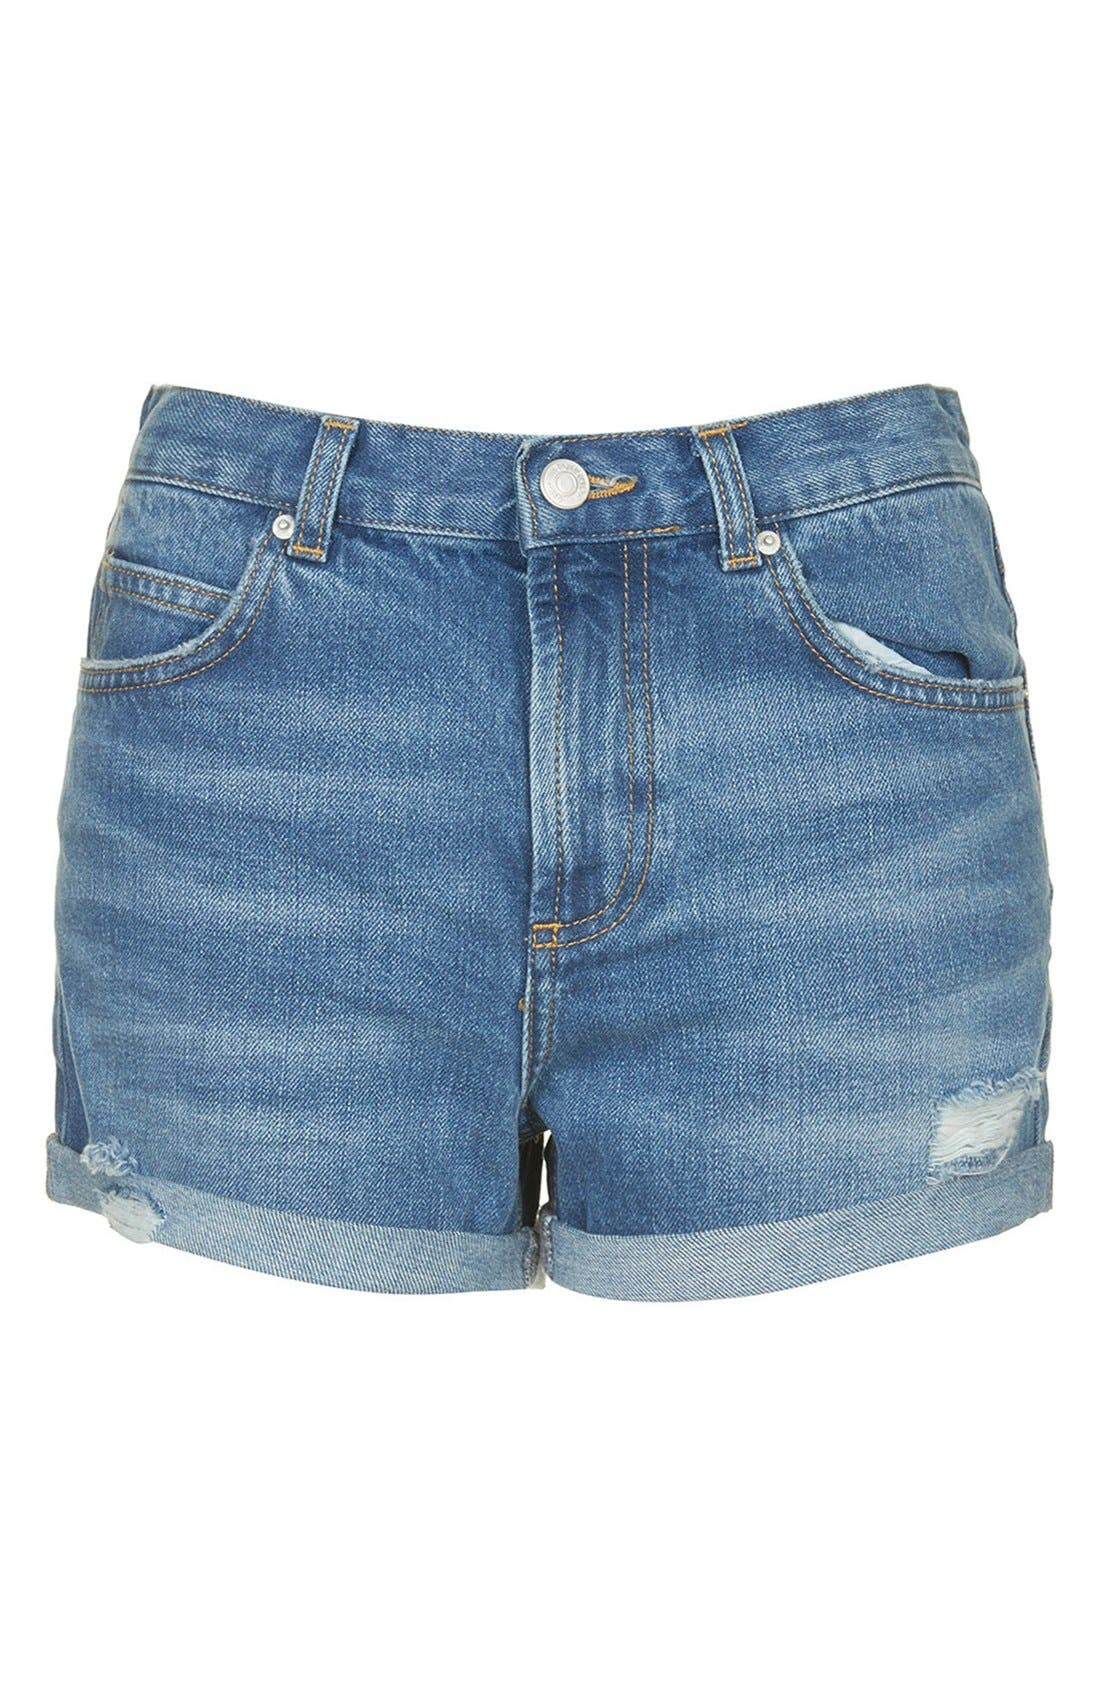 Alternate Image 3  - Topshop Moto 'Rosa' Cuffed Denim Shorts